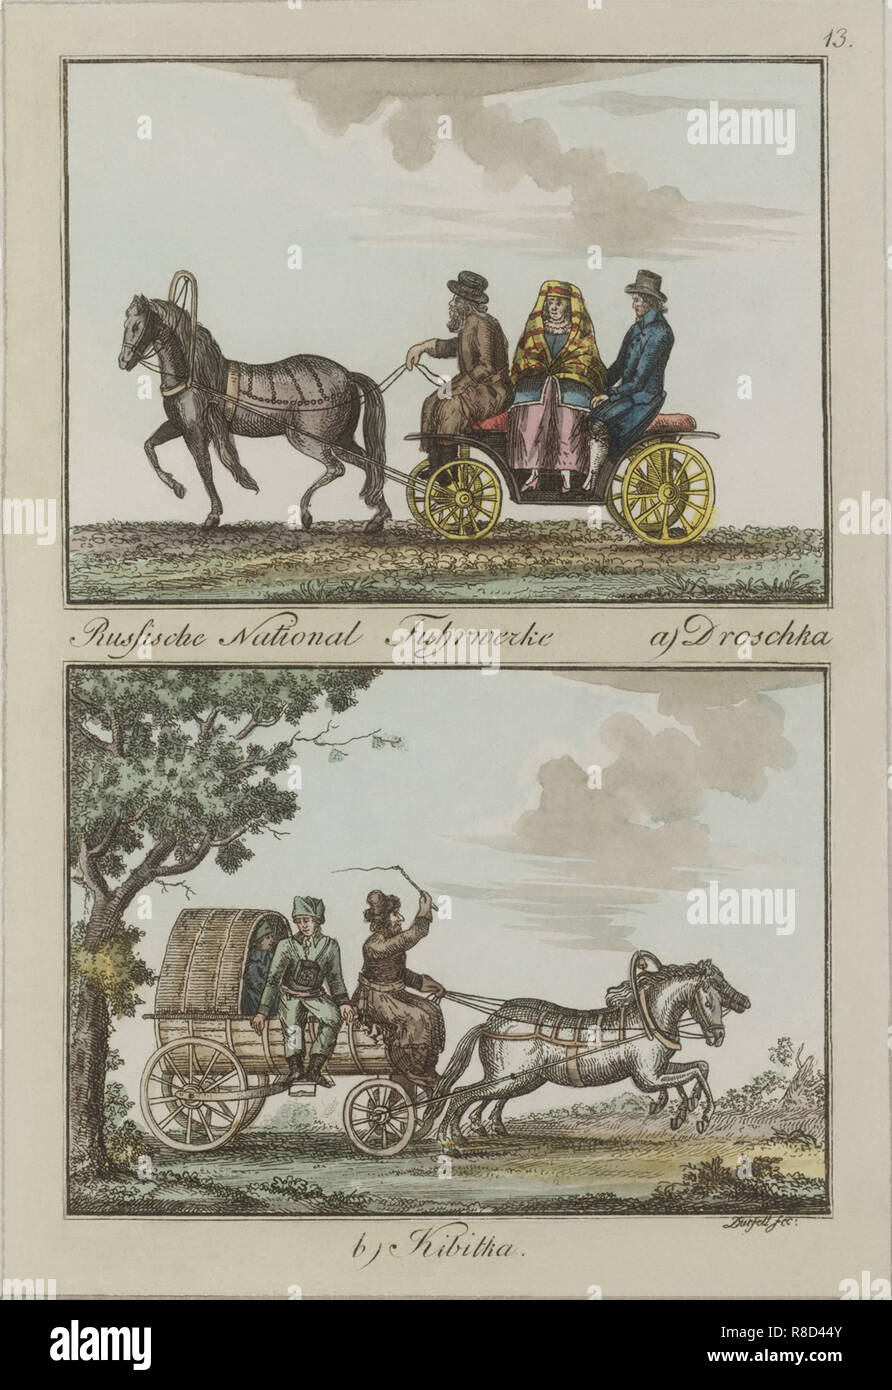 Russian Carriages: Droshky and Kibitka, Between 1792 and 1820. Stock Photo